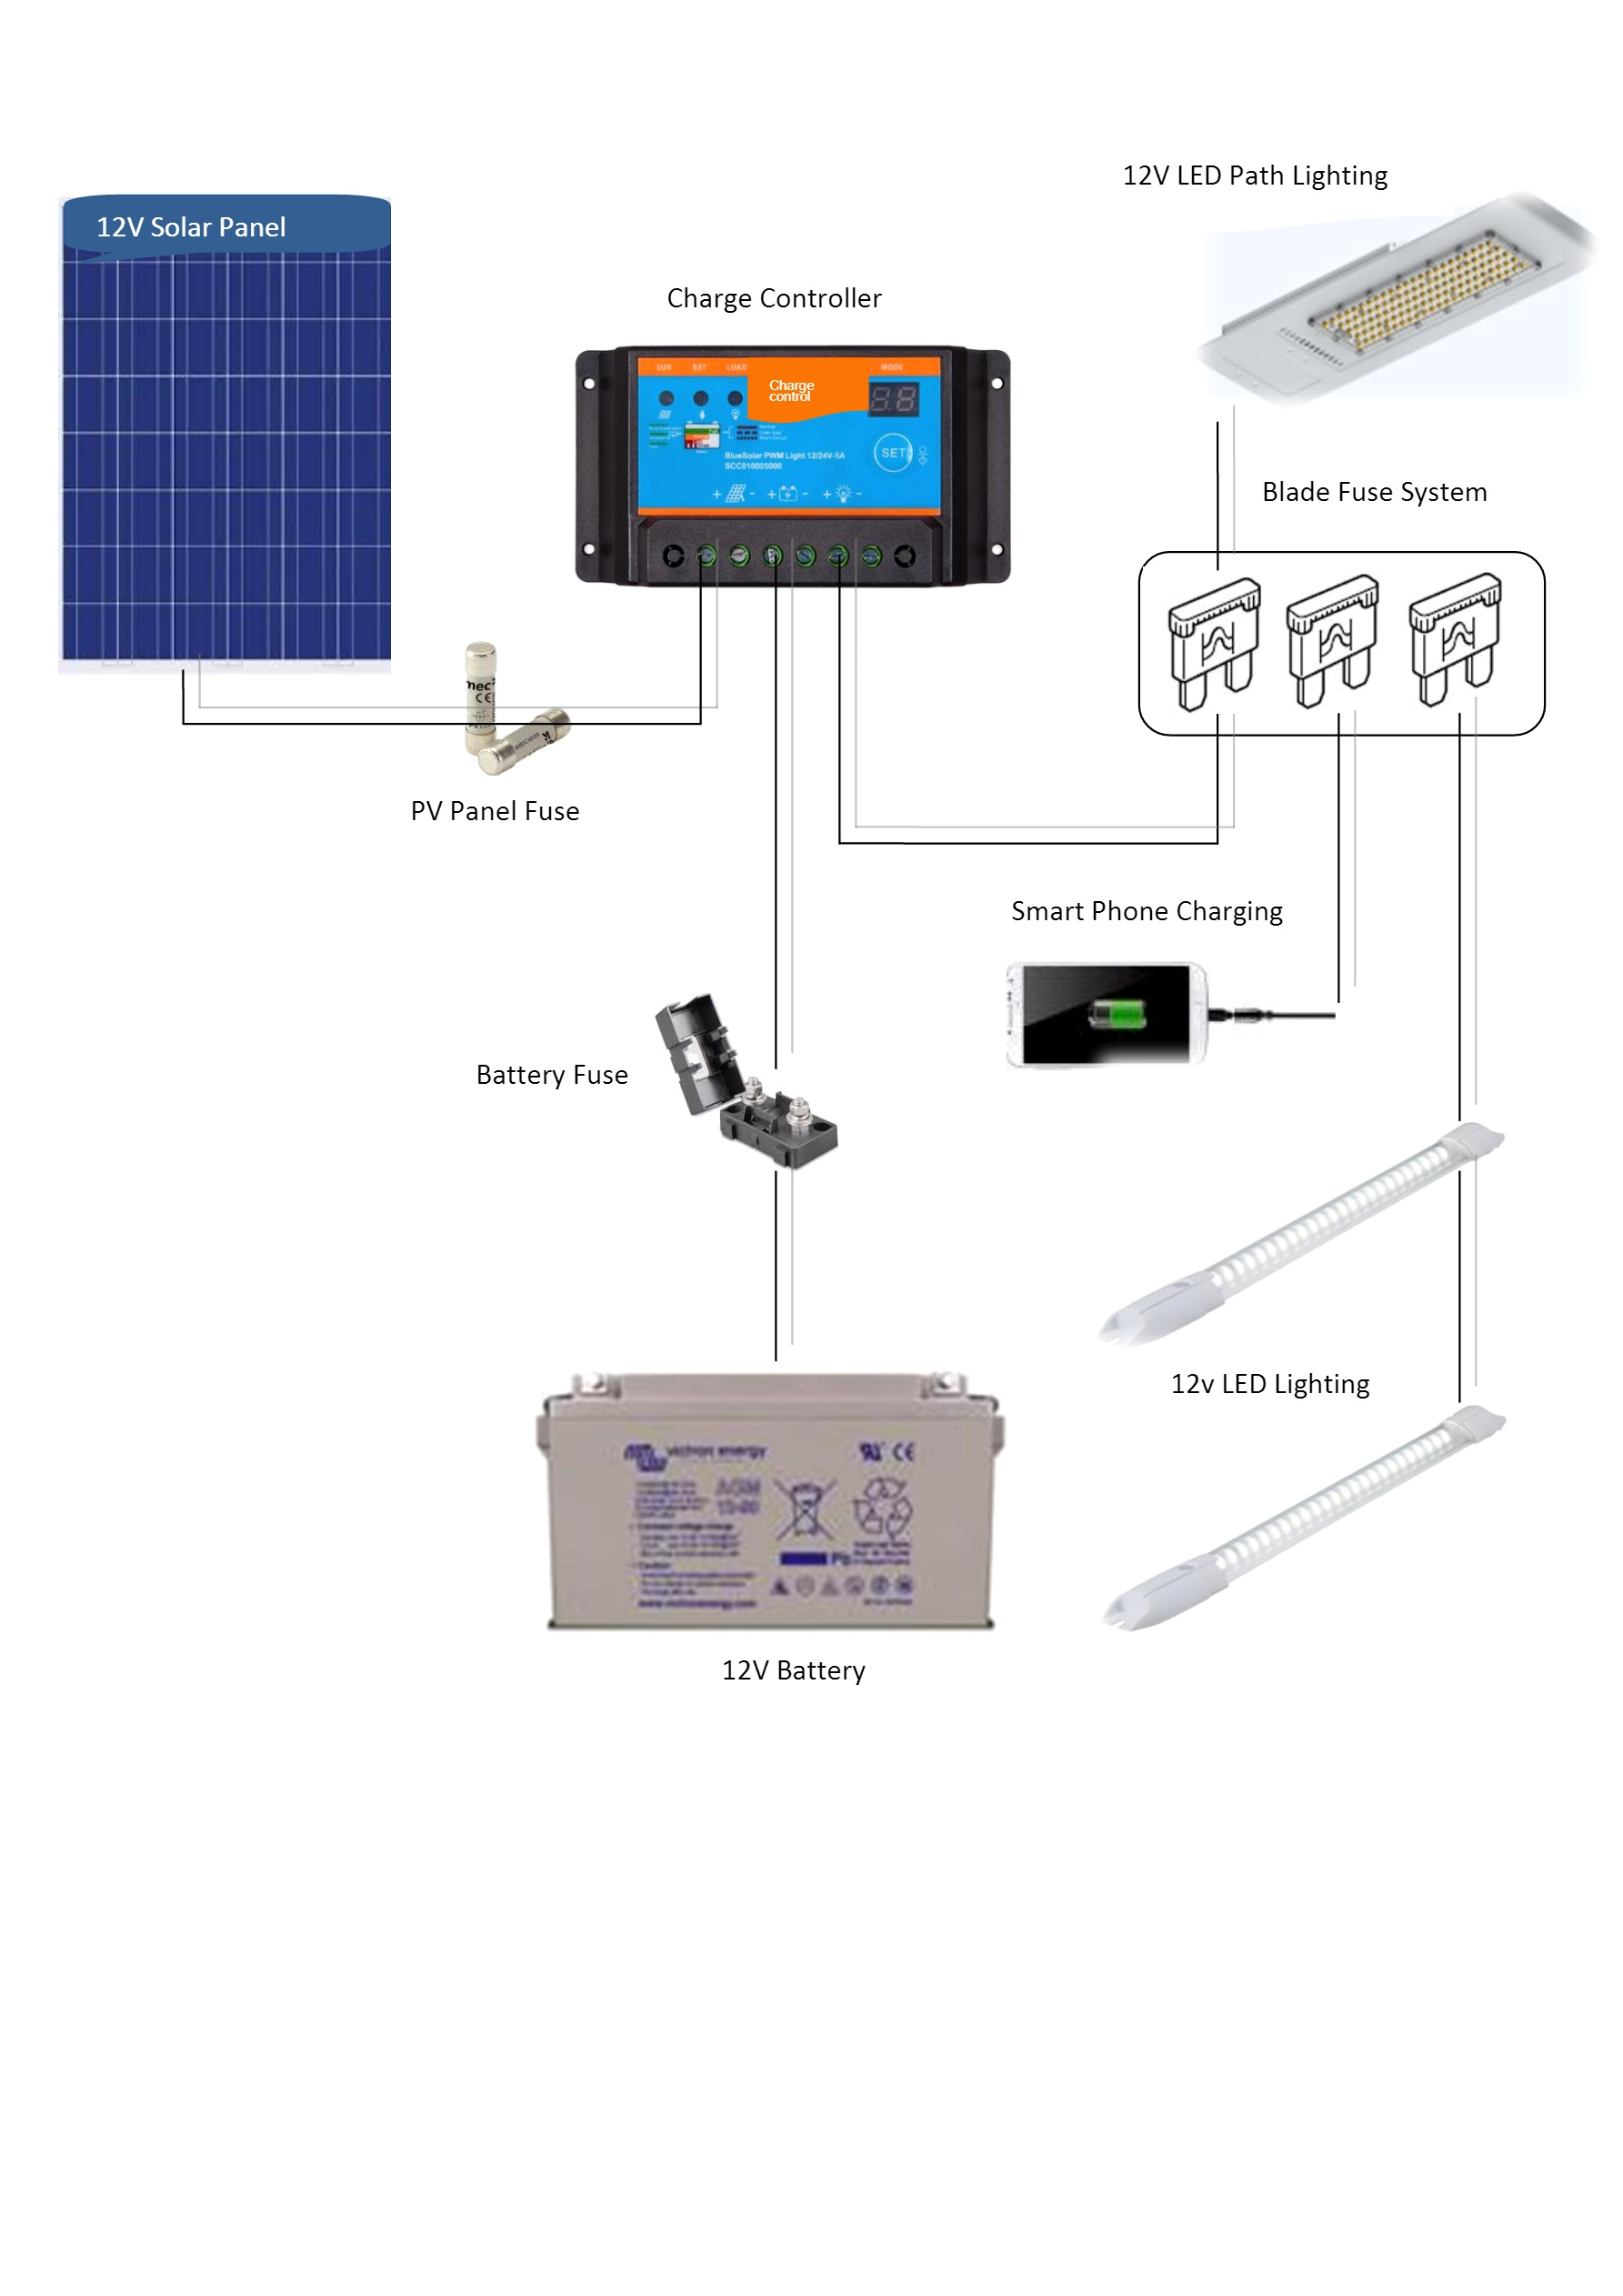 Photovoltaic lighting systems